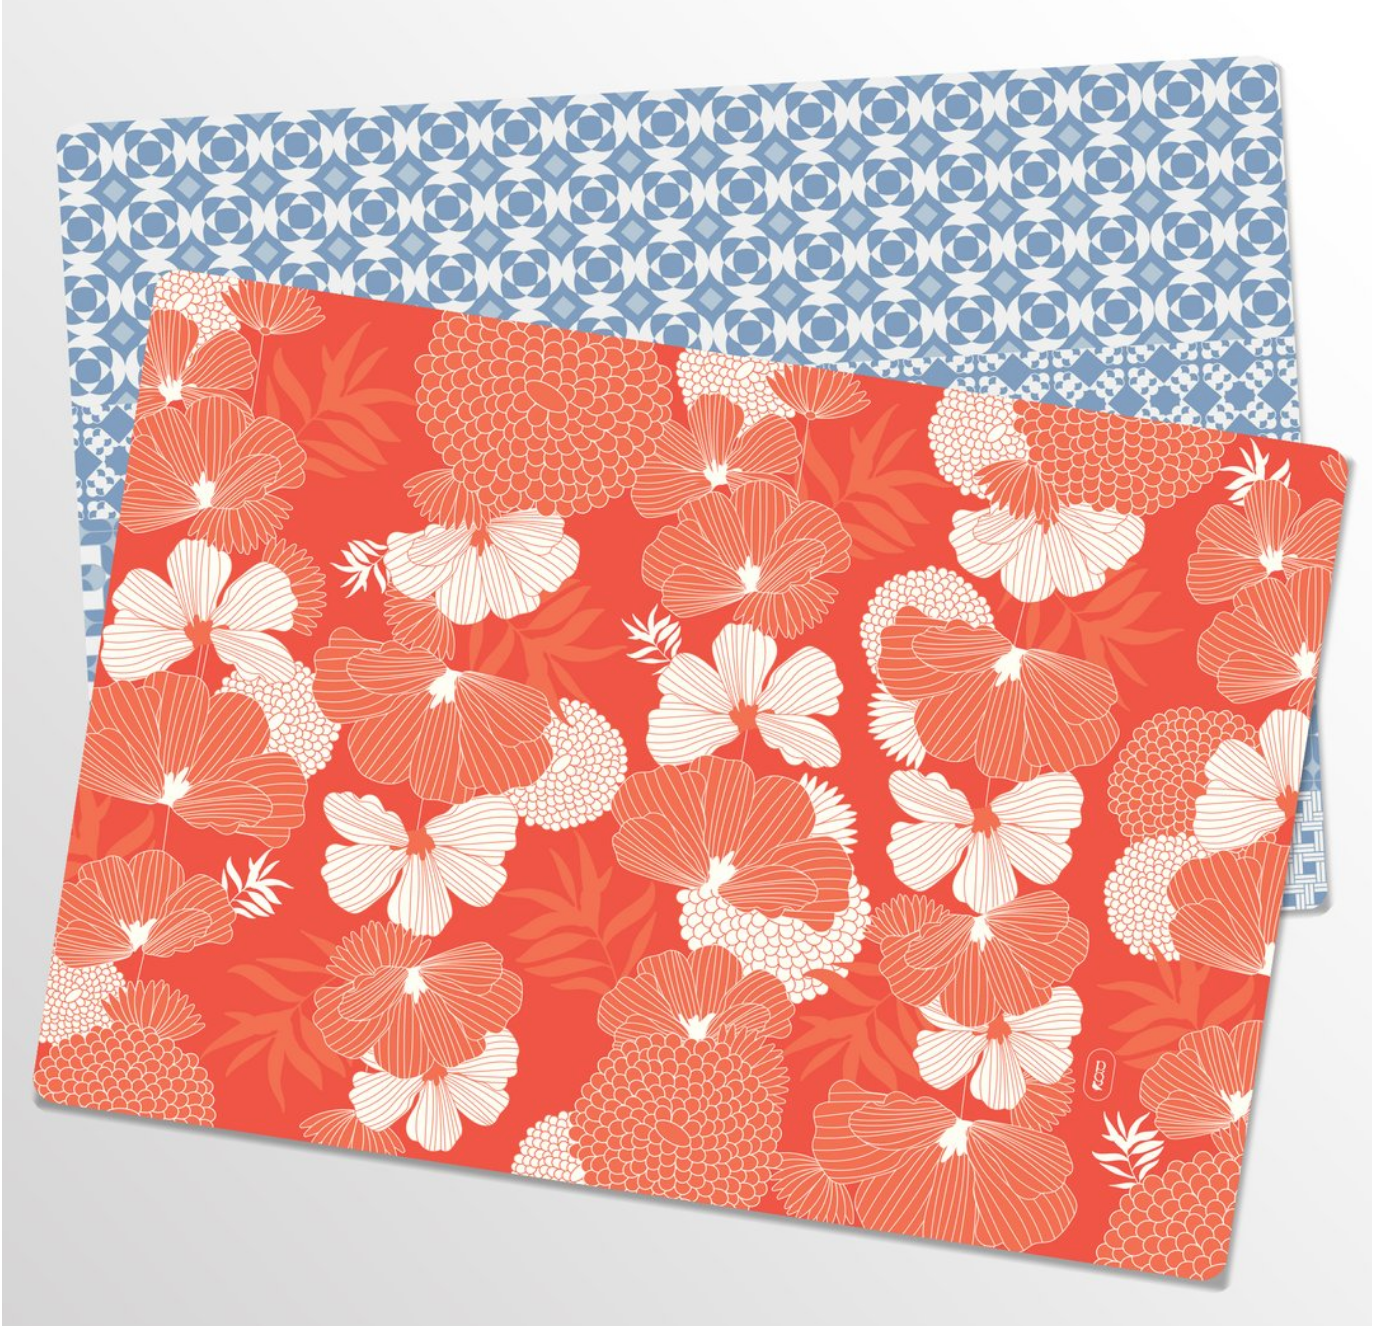 Paper Greats Double Sided Placemats - Pack of 12